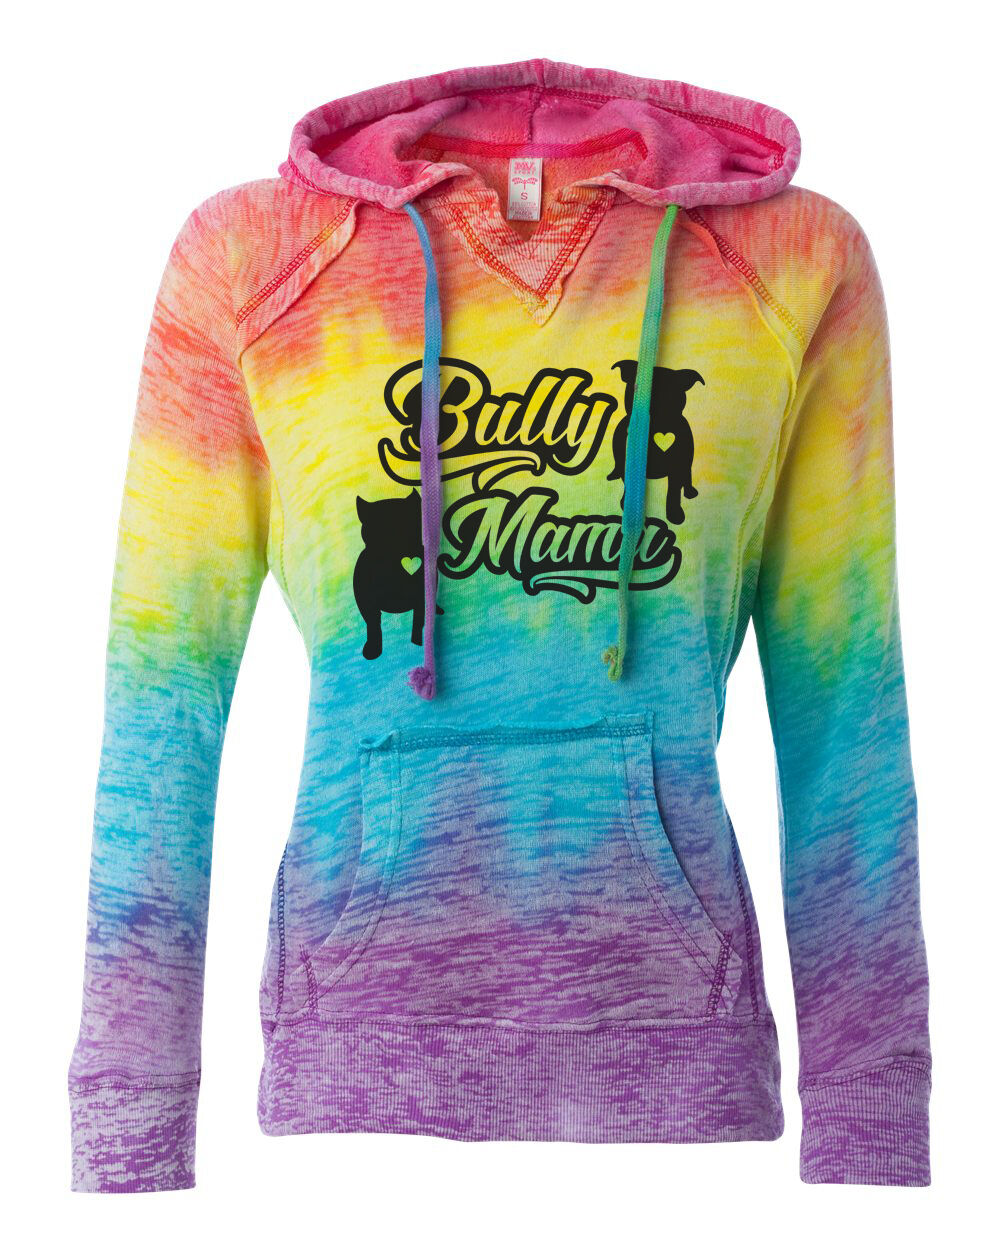 Bully Mama Rainbow Hoodie for women pitbull clothing bully hoodie sizes sm- 2X